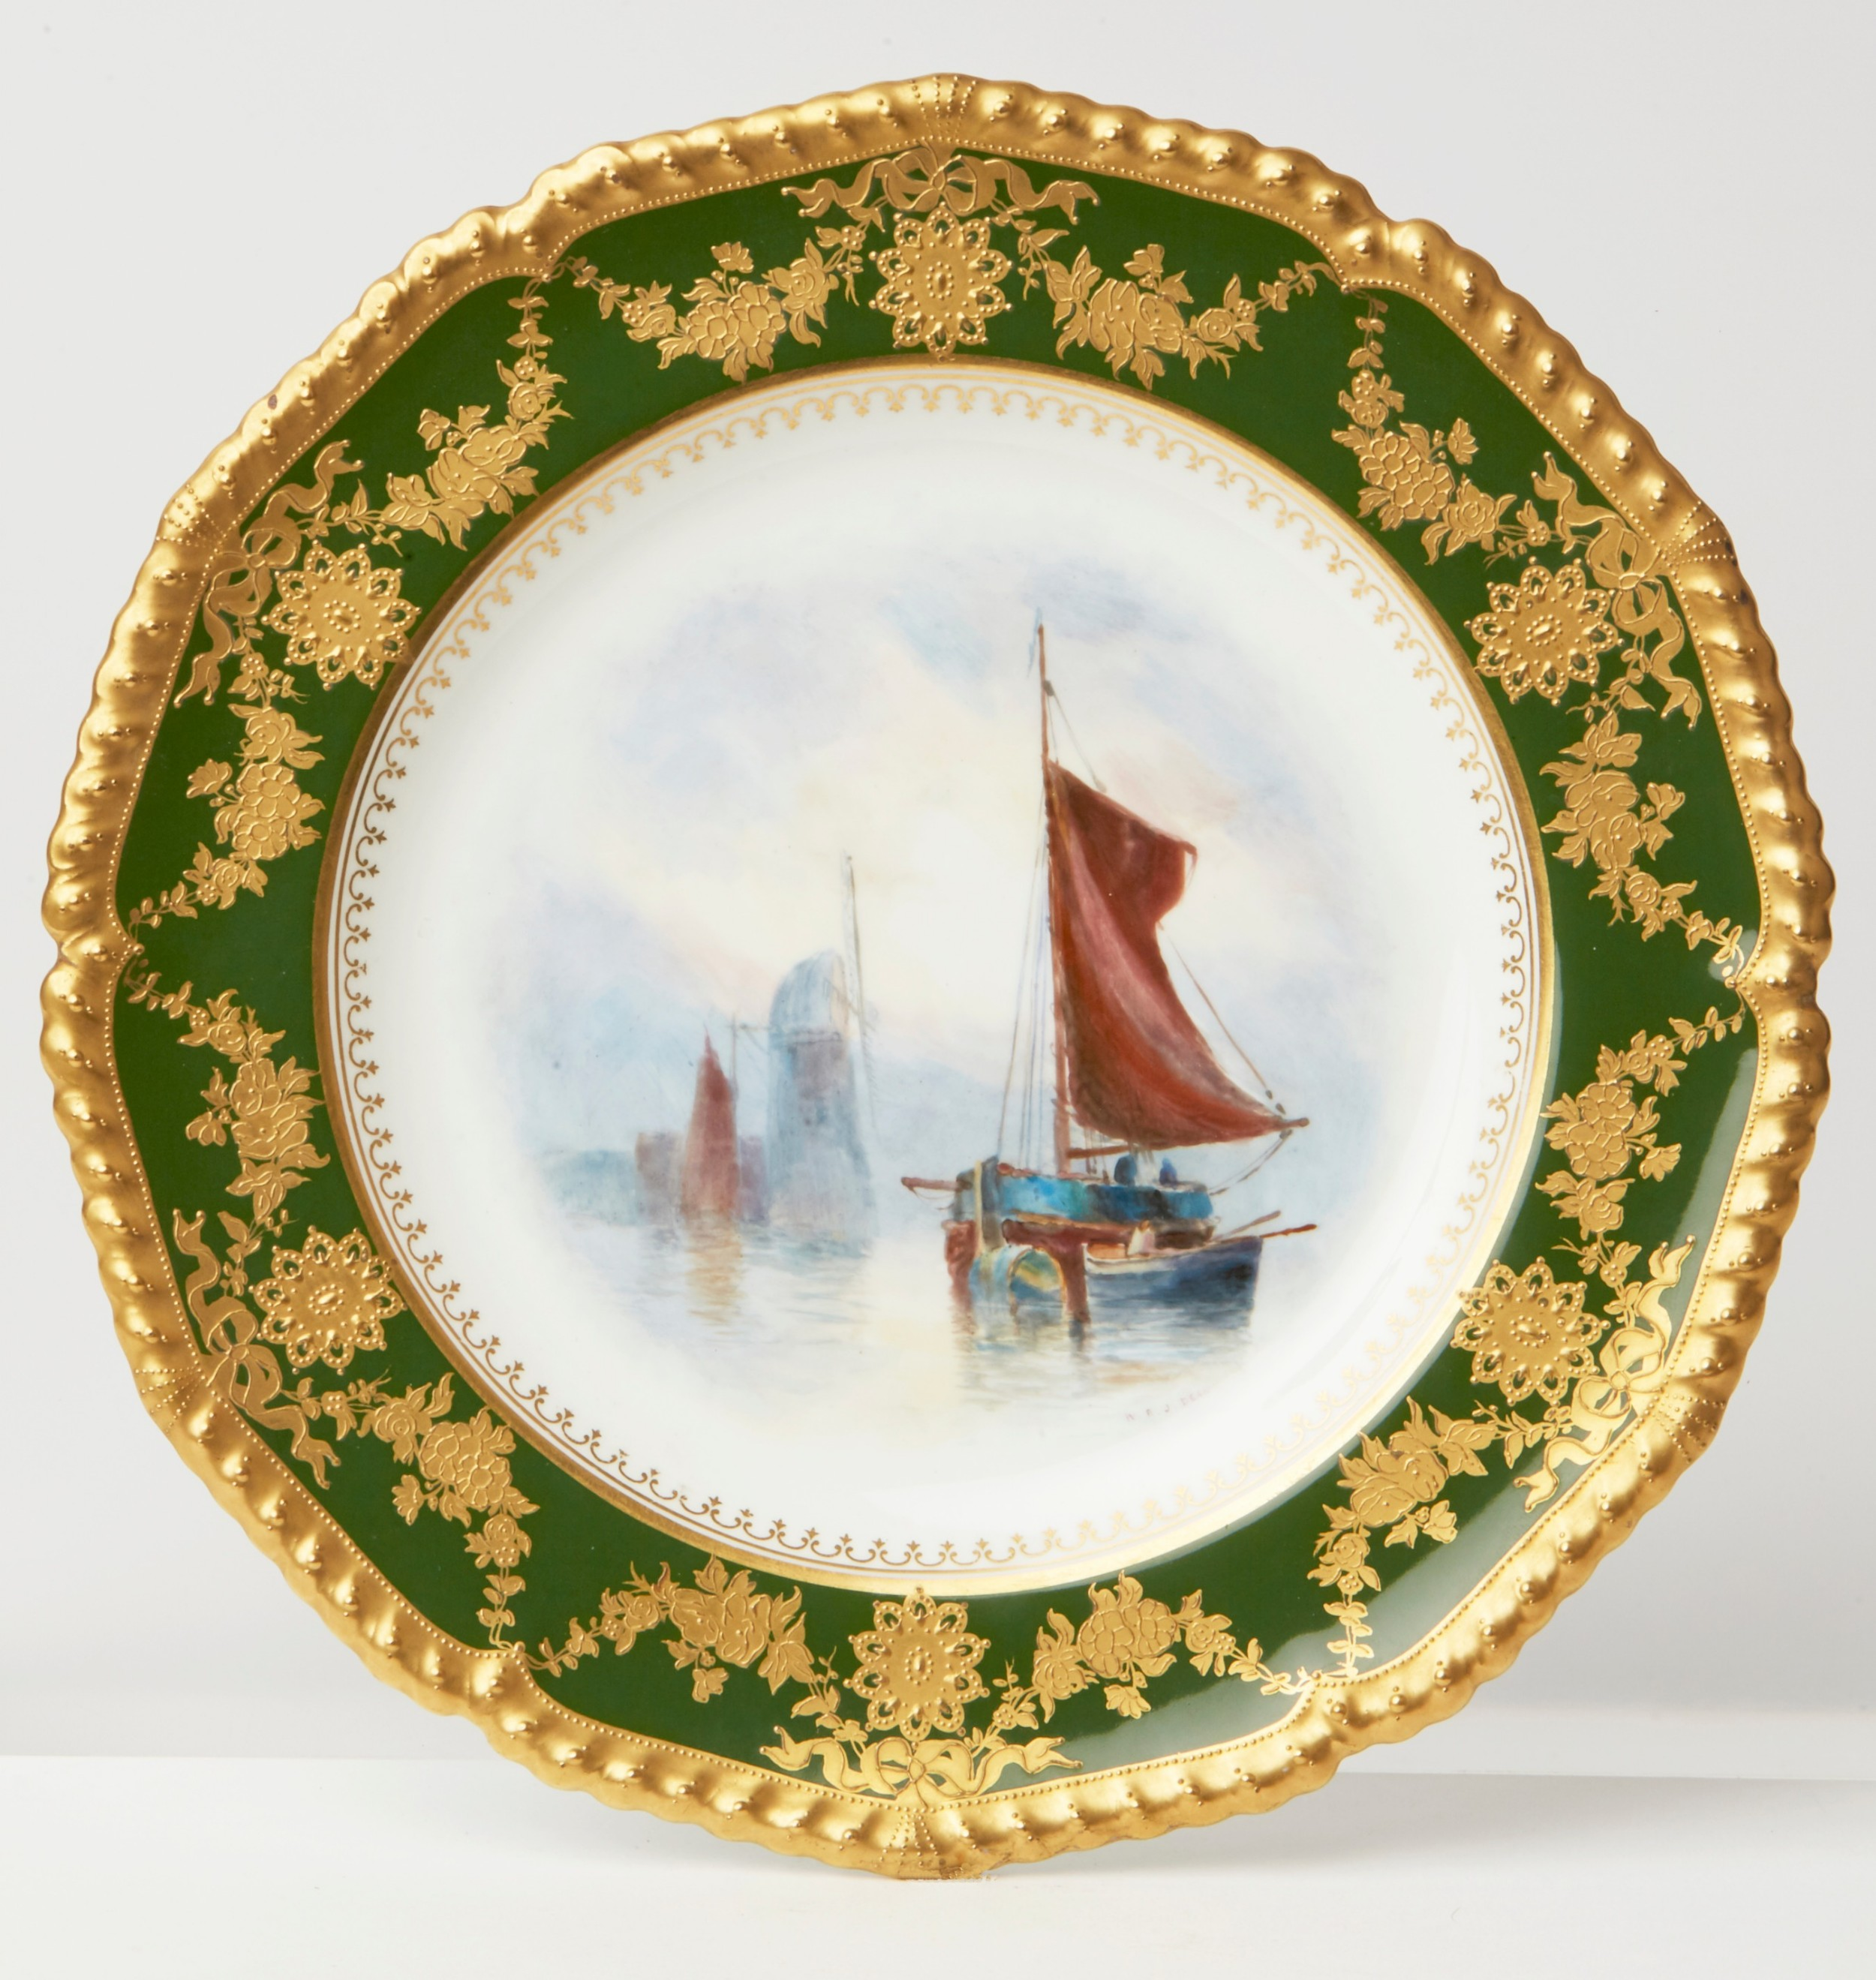 royal crown derby hand painted cabinet plate by dean 1917